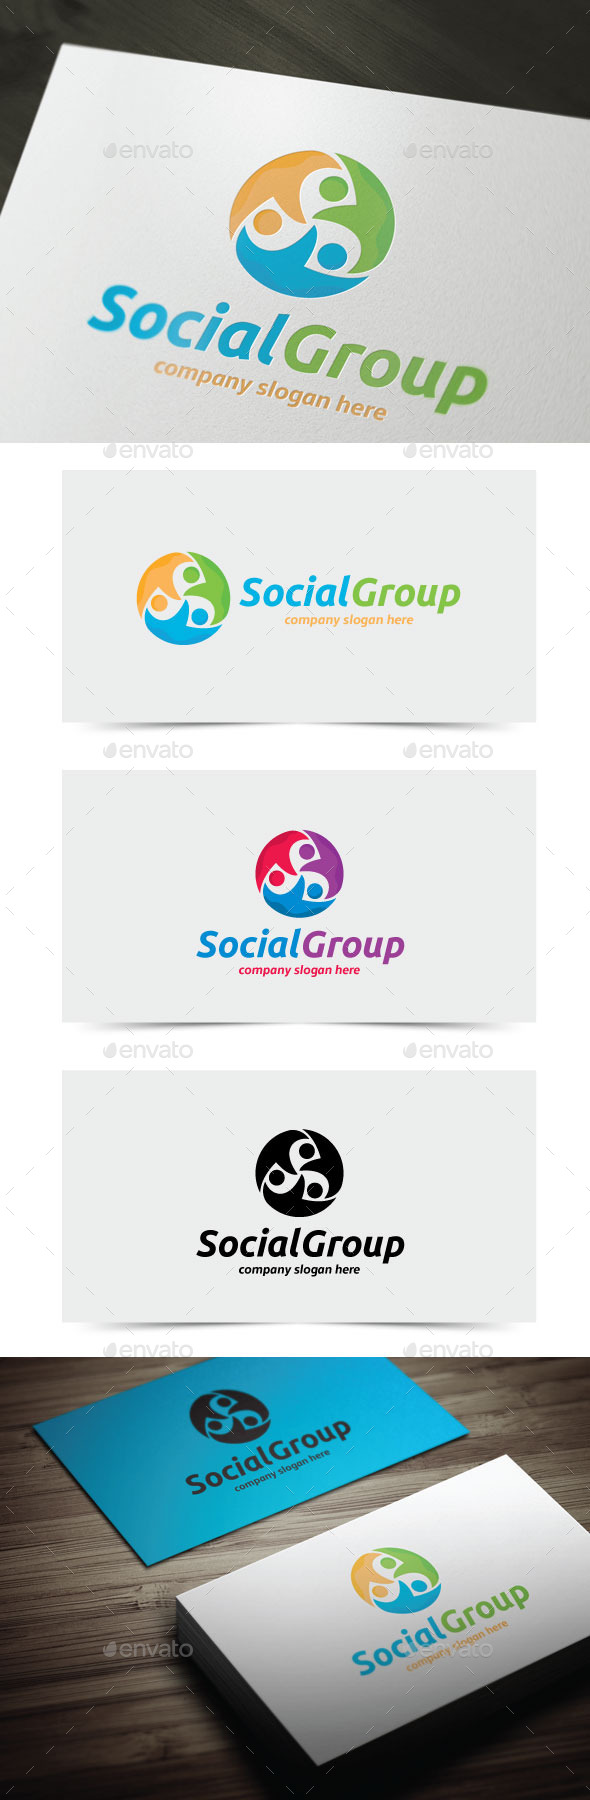 GraphicRiver Social Group 11819355